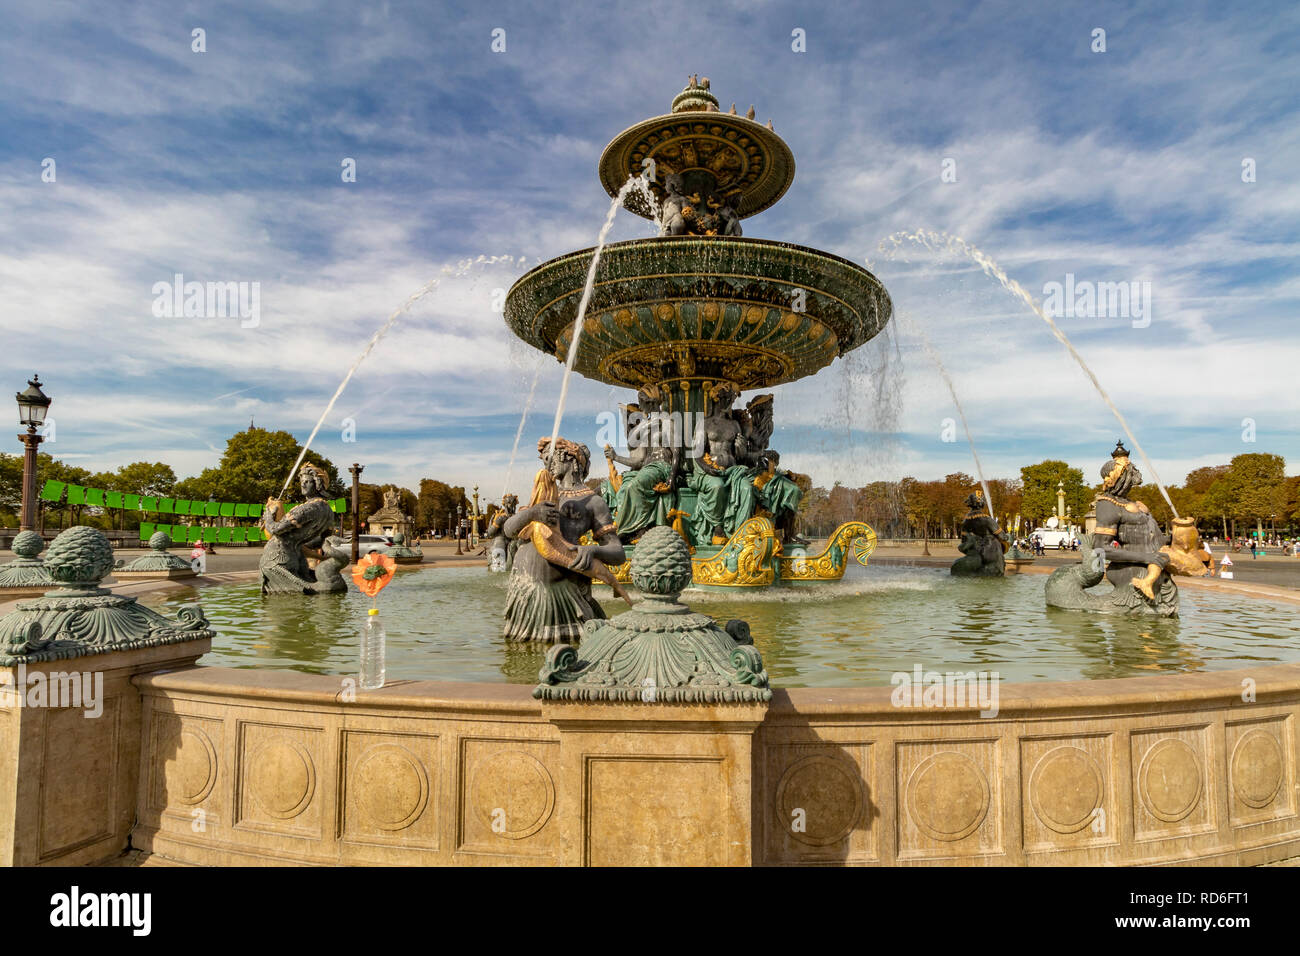 The Fountain of River Commerce and Navigation, one of the two Fontaines de la Concorde ,or Fountains at The Place de la Concorde - Stock Image